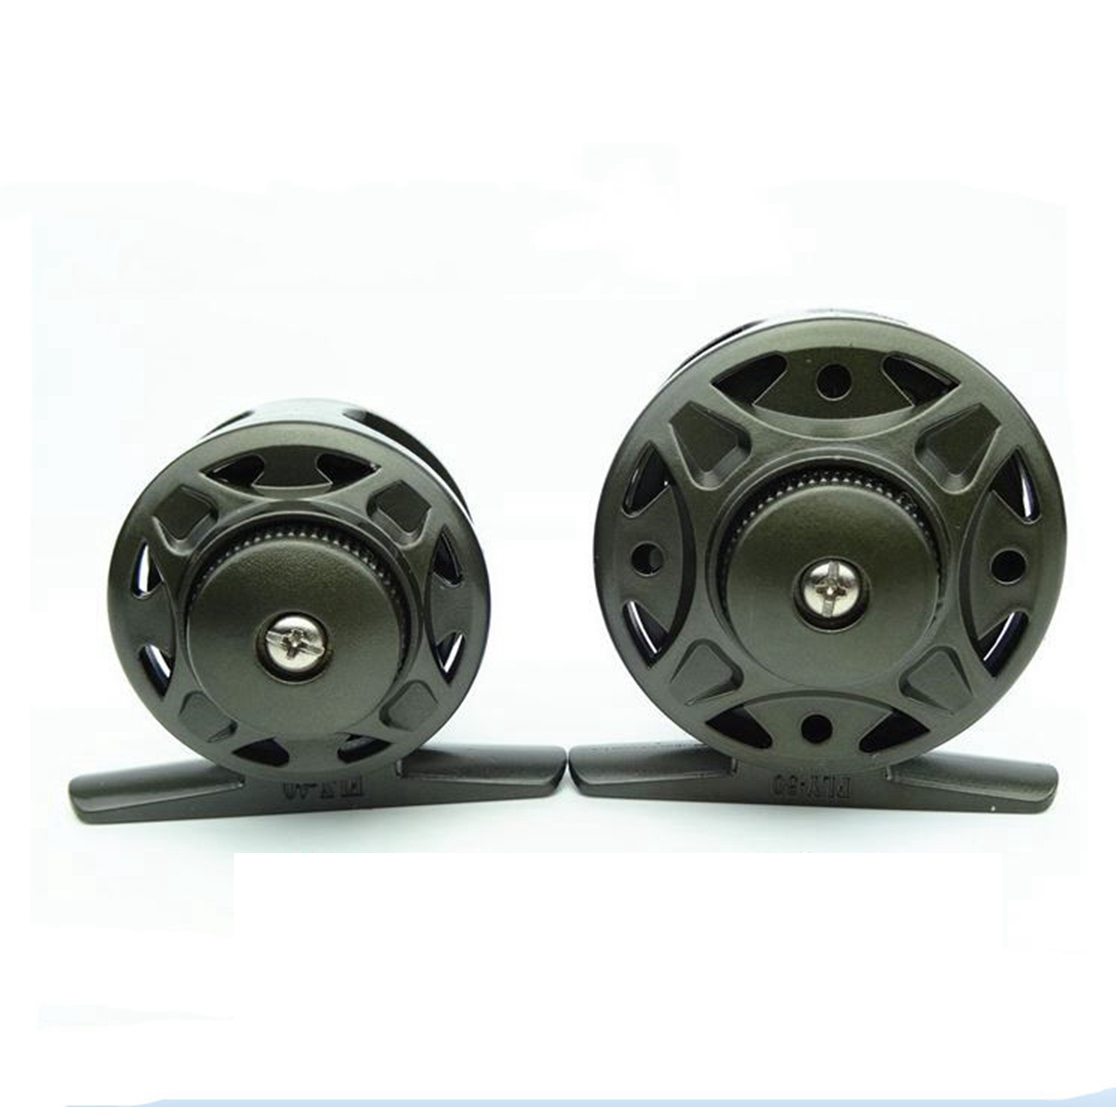 Inshore saltwater ice fishing reels ice reel straight for Ice fishing reel